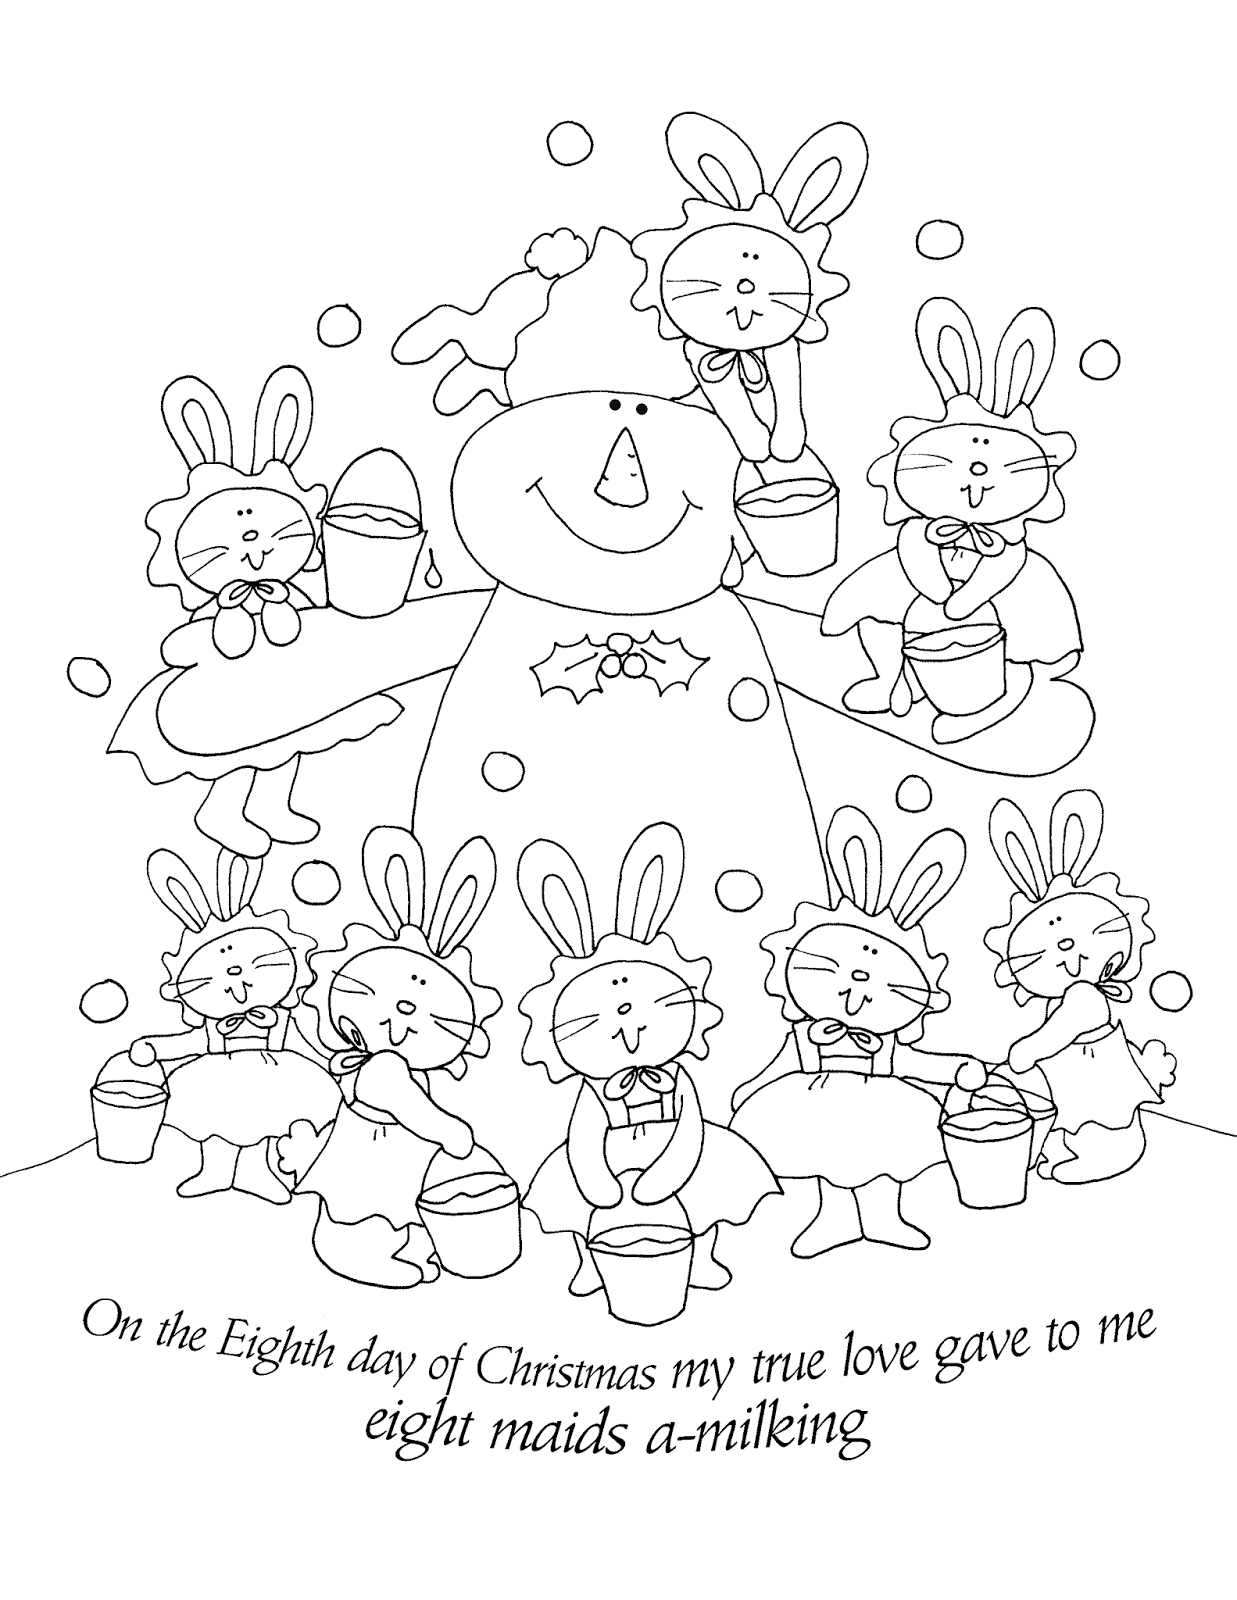 Free Dearie Dolls Digi Stamps: The Eighth Day of Christmas